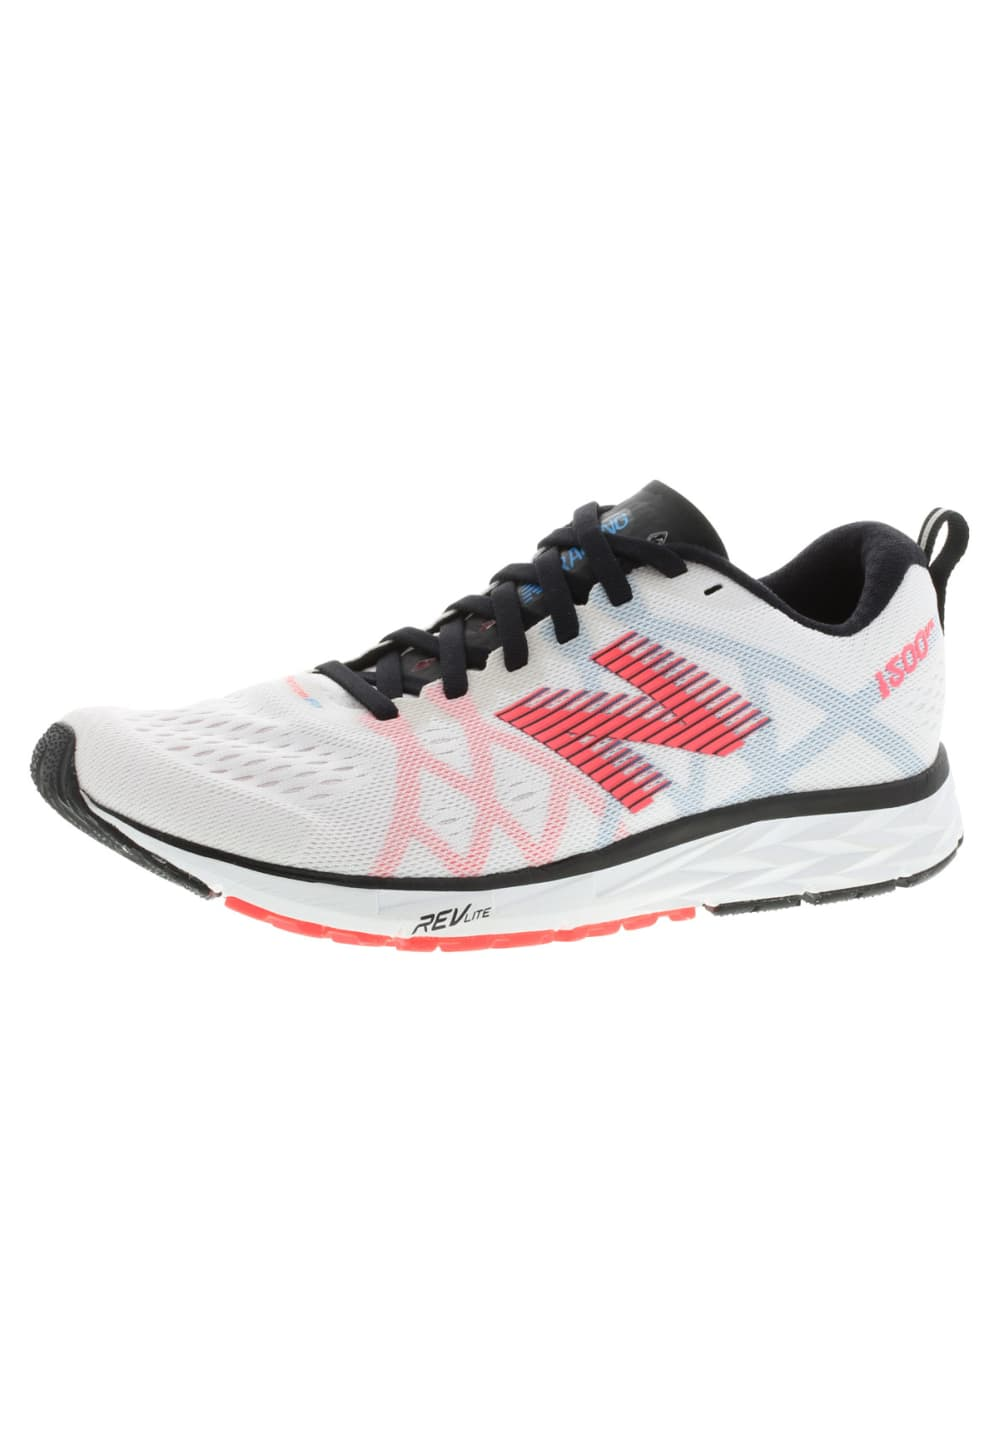 huge selection of 76b22 93cee Next. New Balance. 1500 V4 - Chaussures running pour Femme